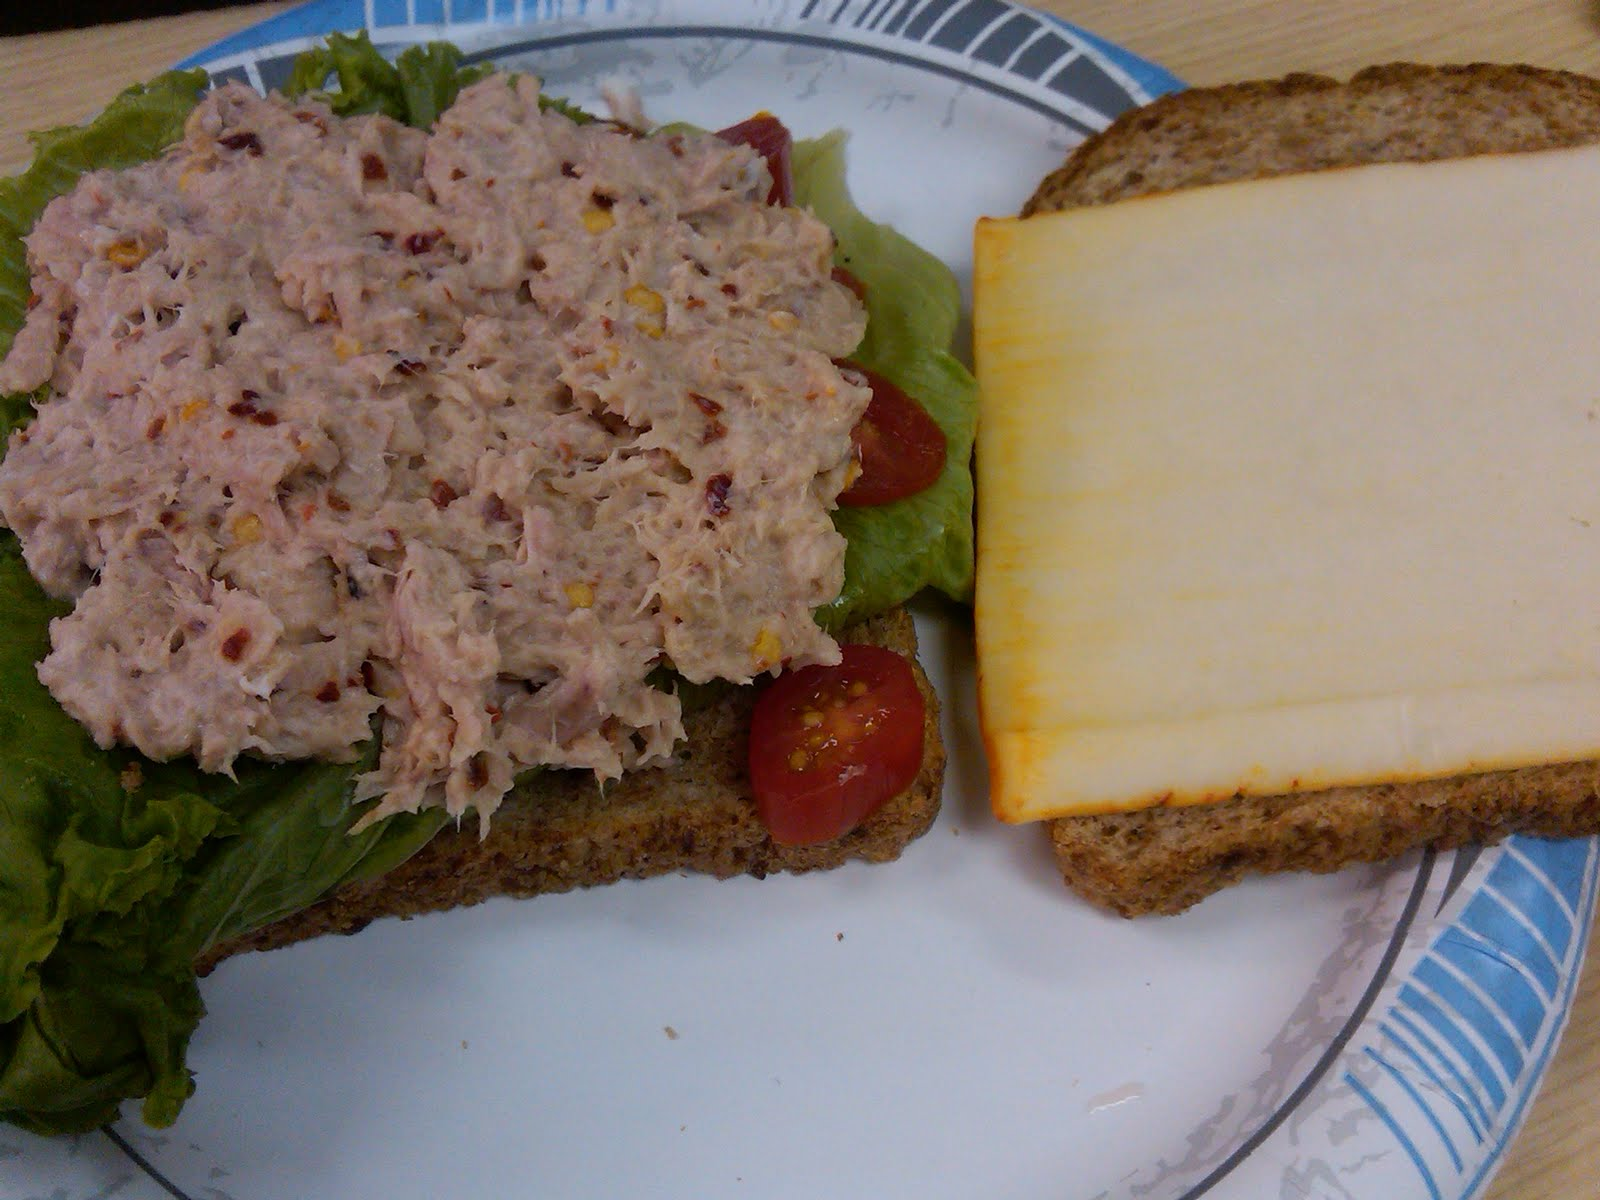 Kanwal 39 s kitchen recipe alert my awesome tuna fish sandwhich for How to make a tuna fish sandwich